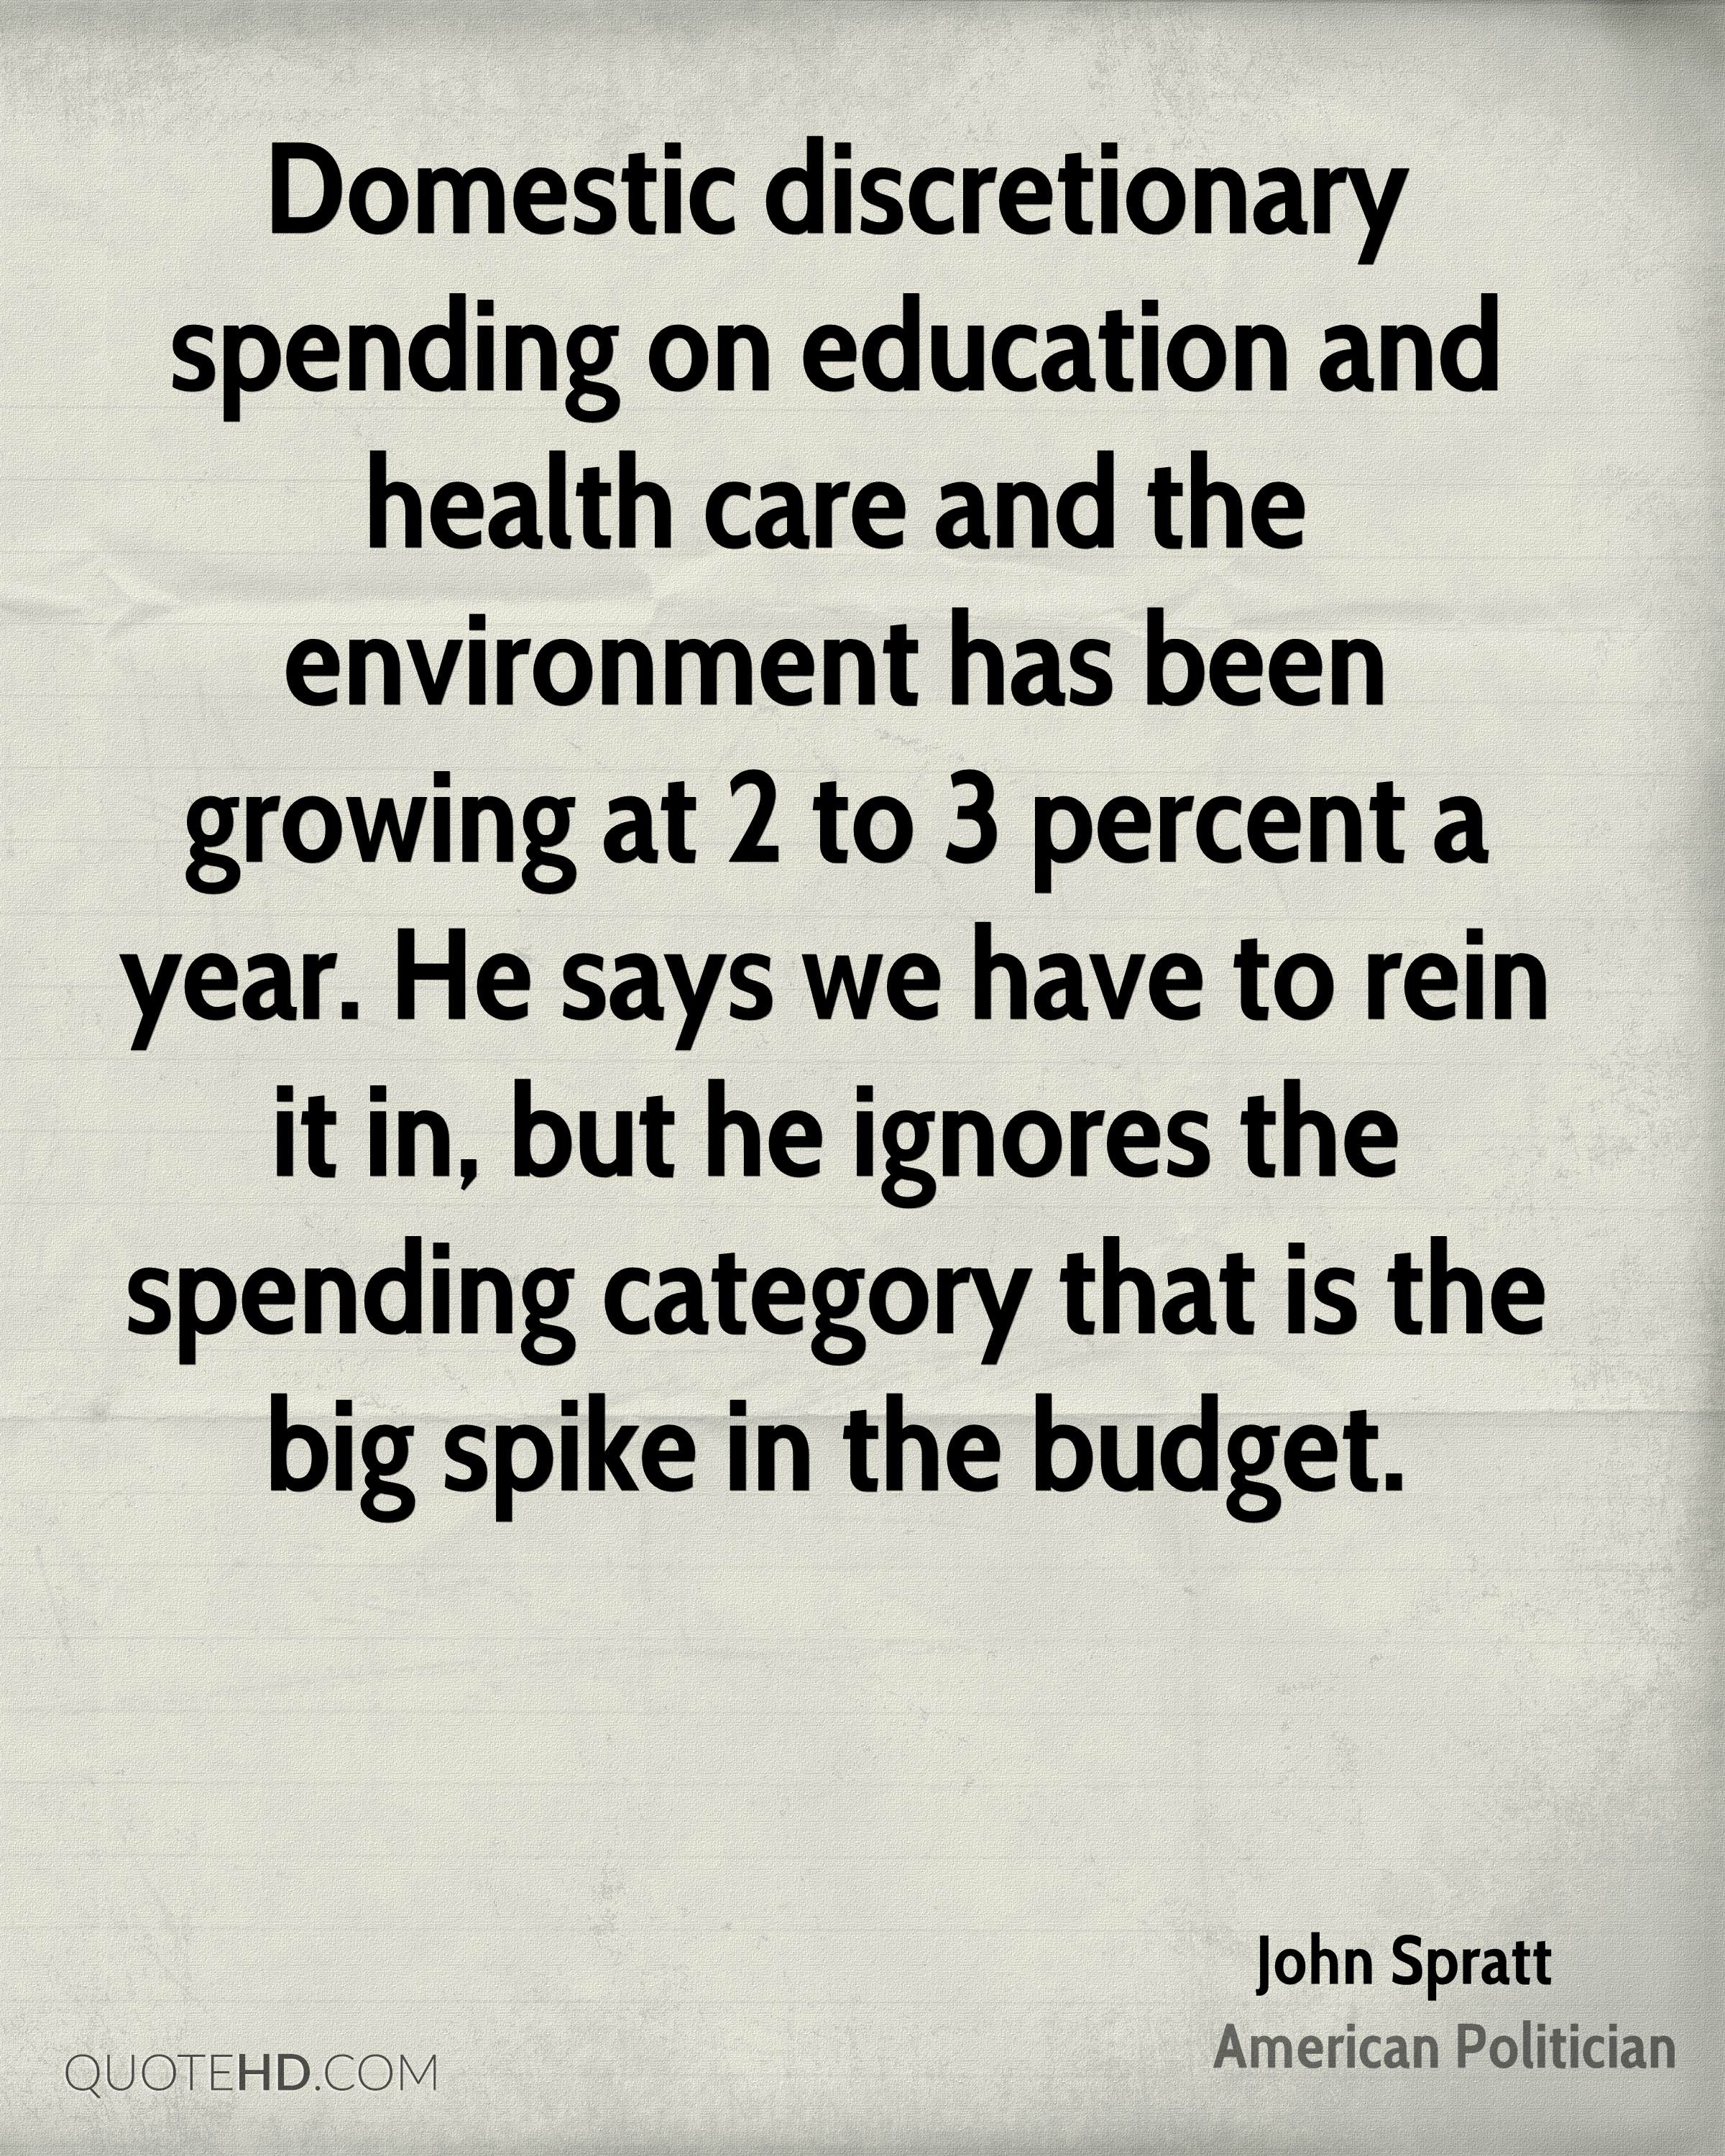 Domestic discretionary spending on education and health care and the environment has been growing at 2 to 3 percent a year. He says we have to rein it in, but he ignores the spending category that is the big spike in the budget.